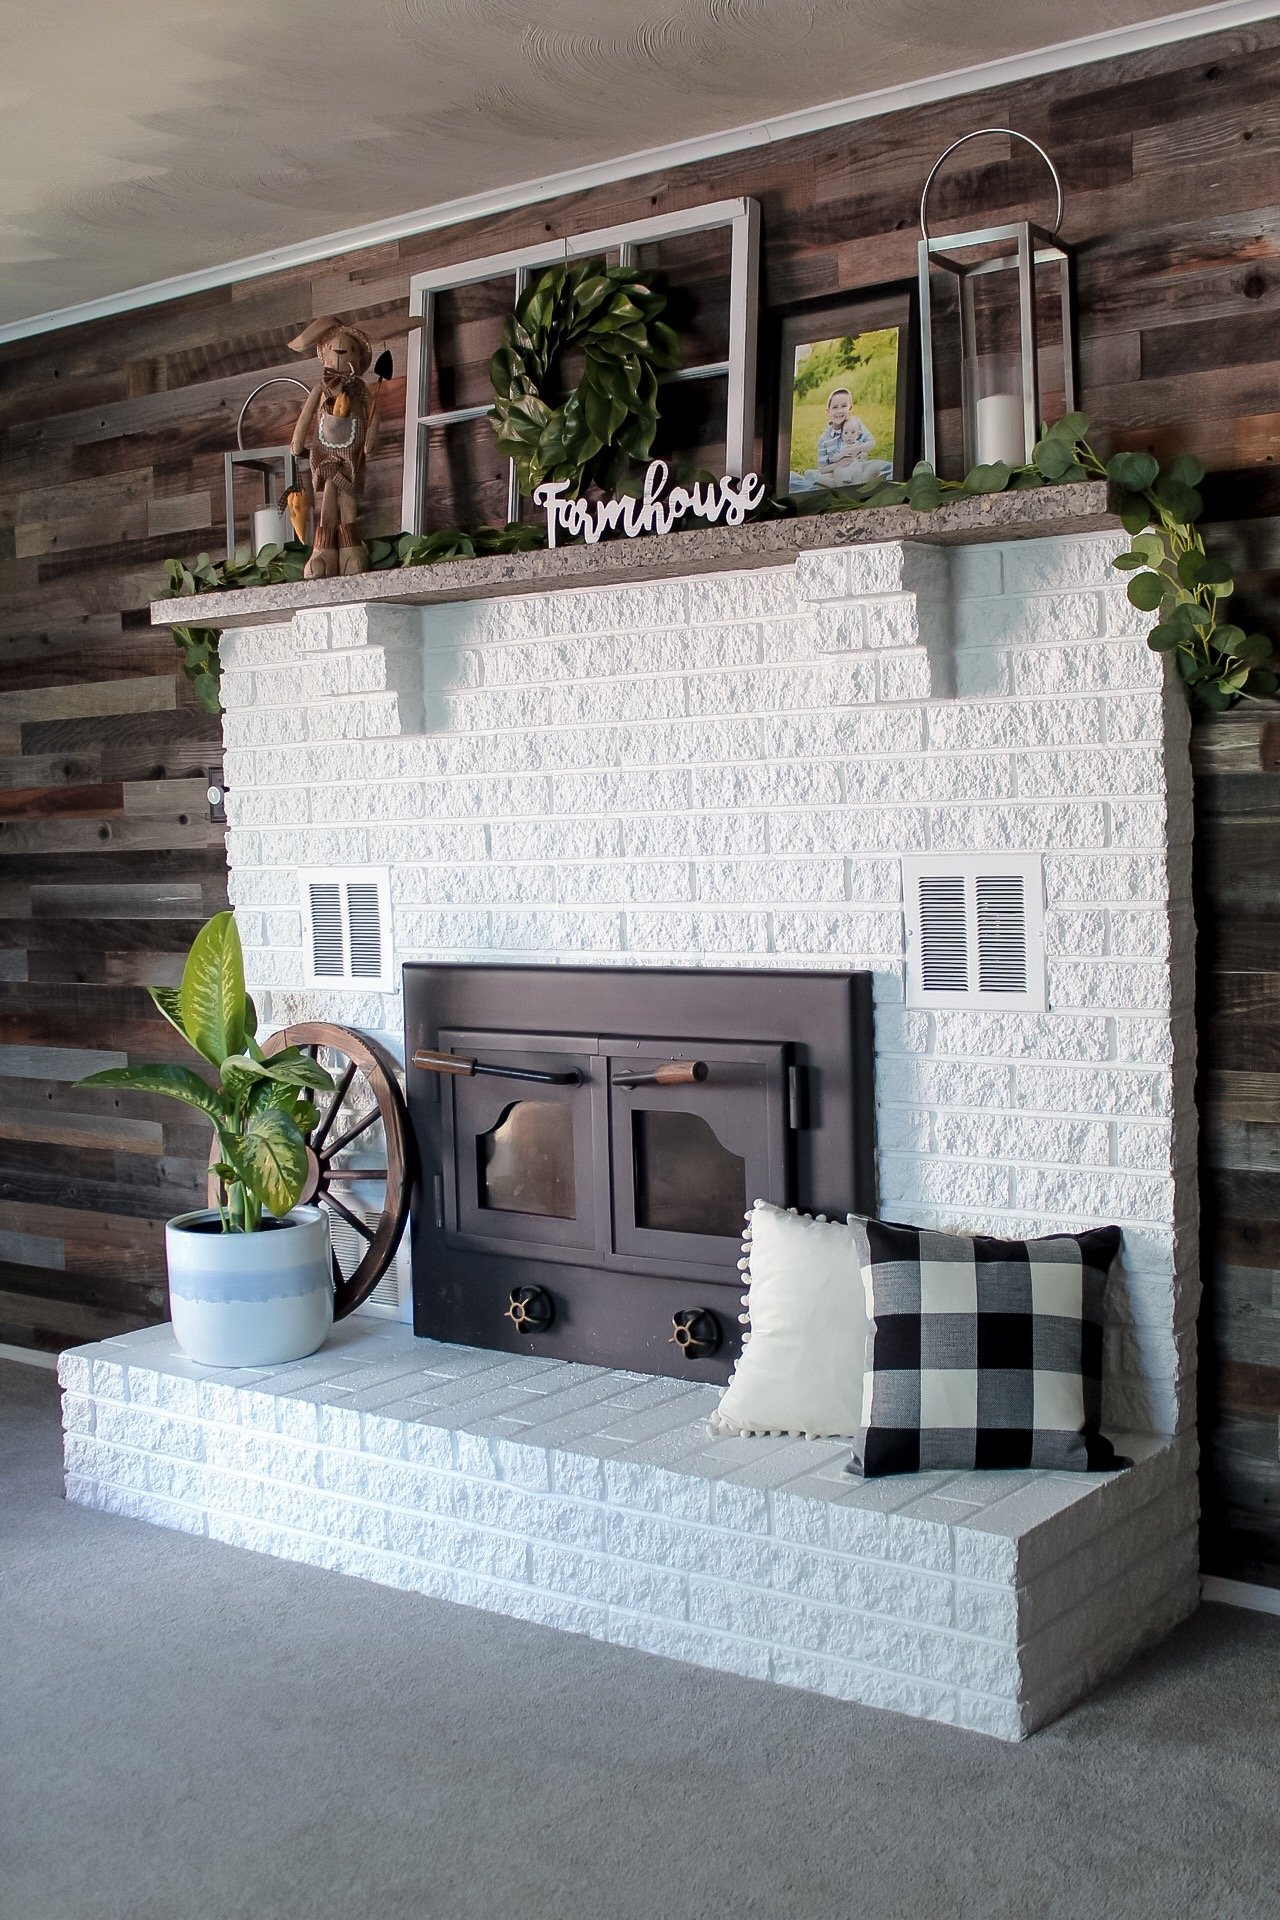 Our painted fireplace in the color Extra White (SW-7006), decorated with farmhouse decor